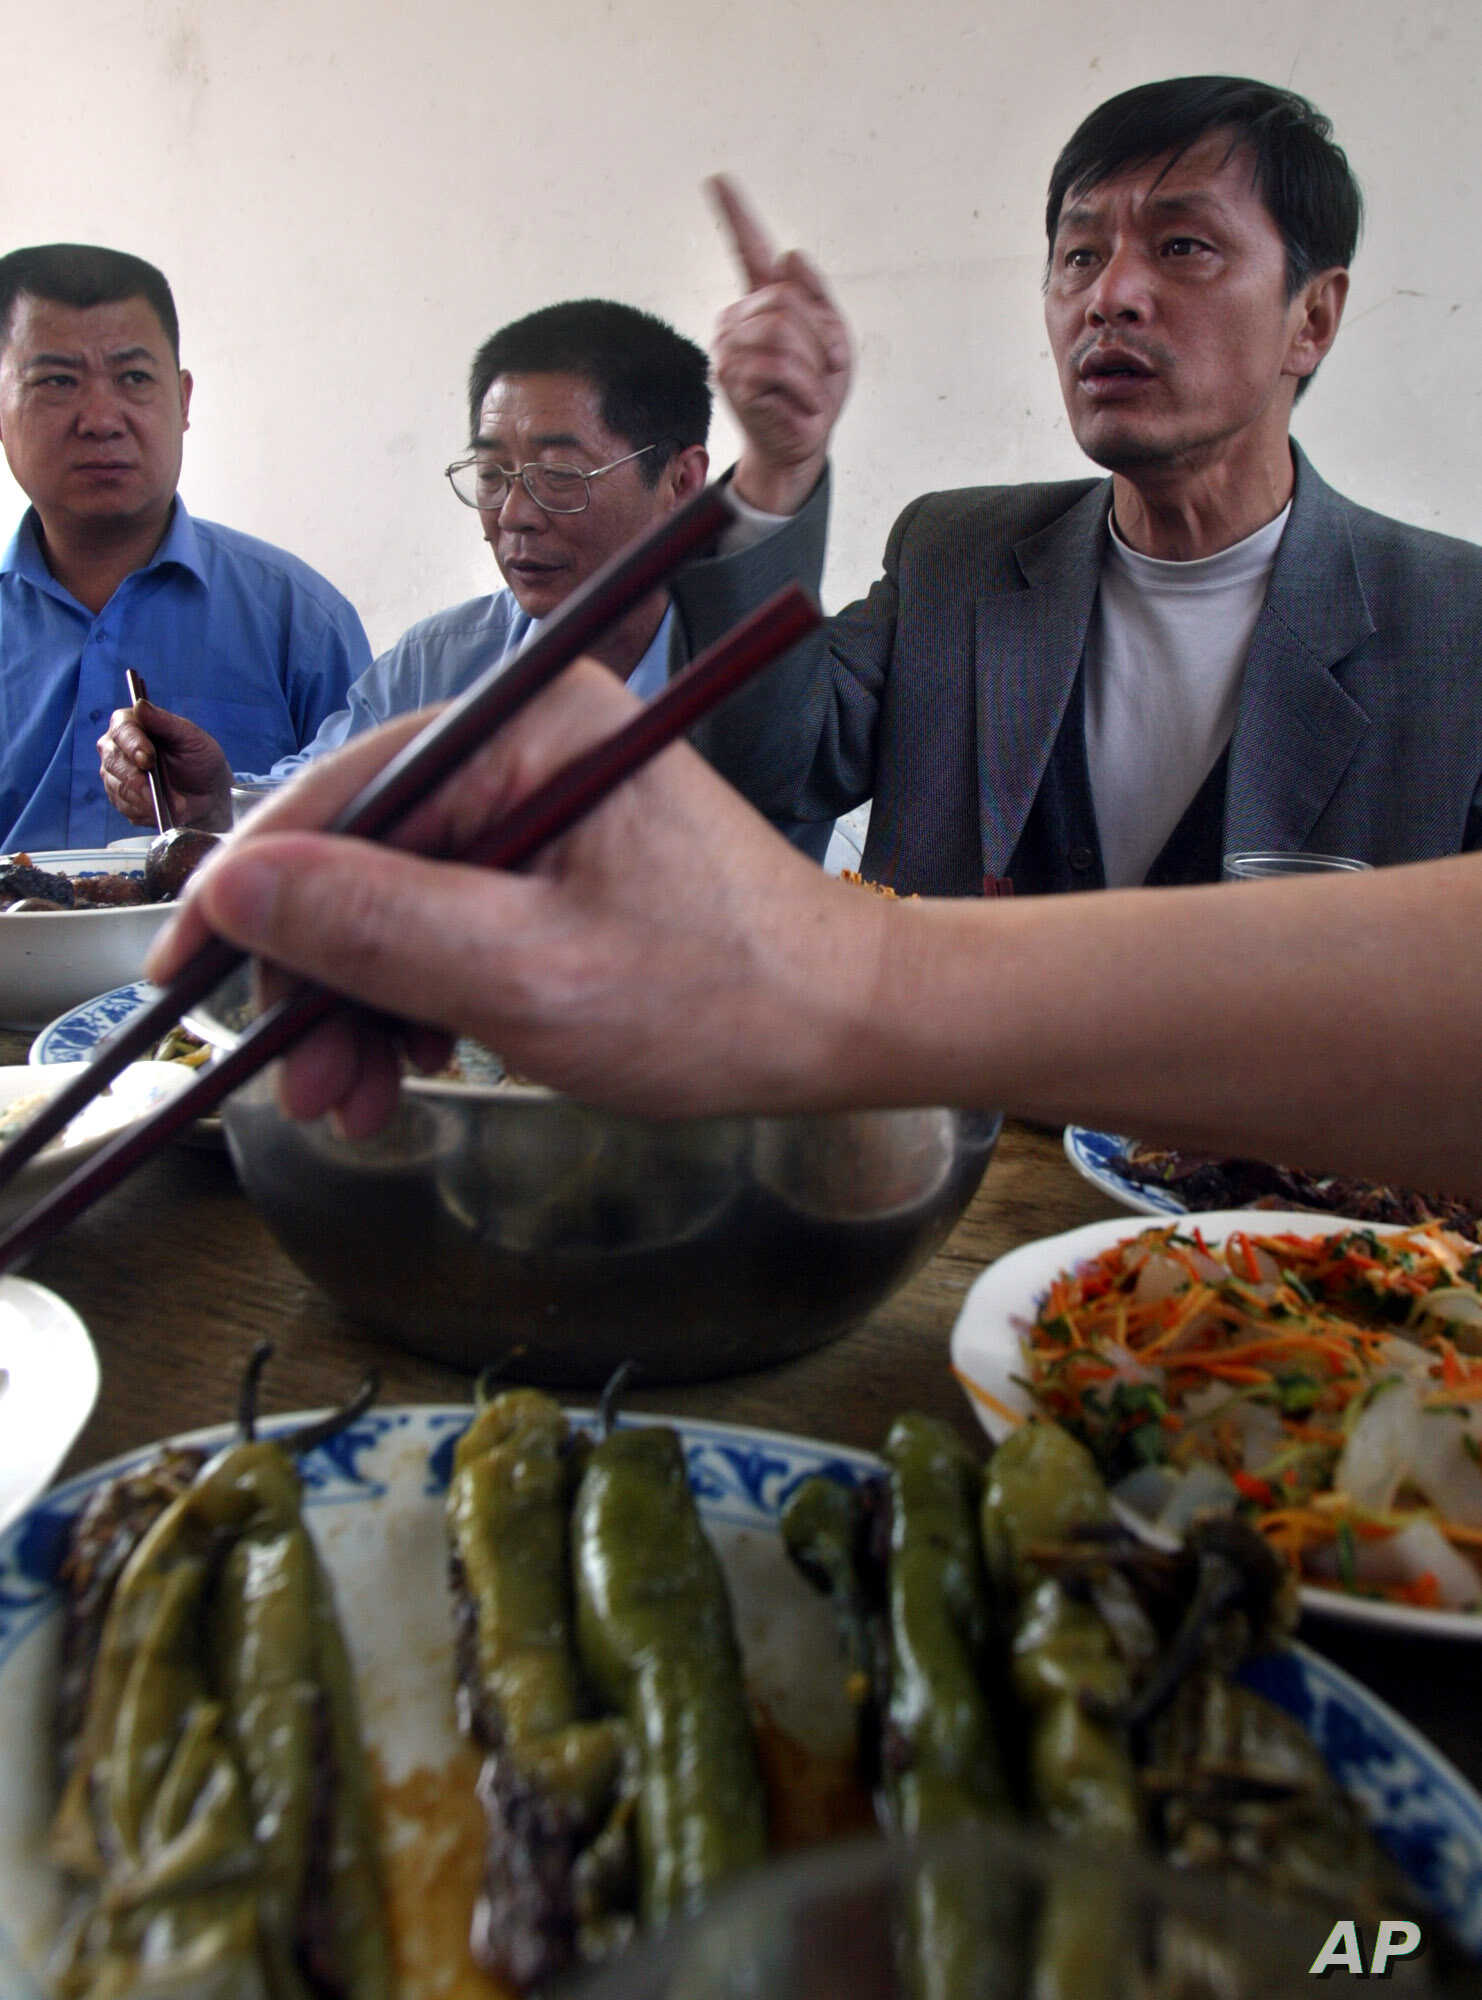 FILE - Xiang Nanfu at an Easter meal at a brick home in Houbaihujian village, on the outskirts of Beijing, China, April 11, 2004.